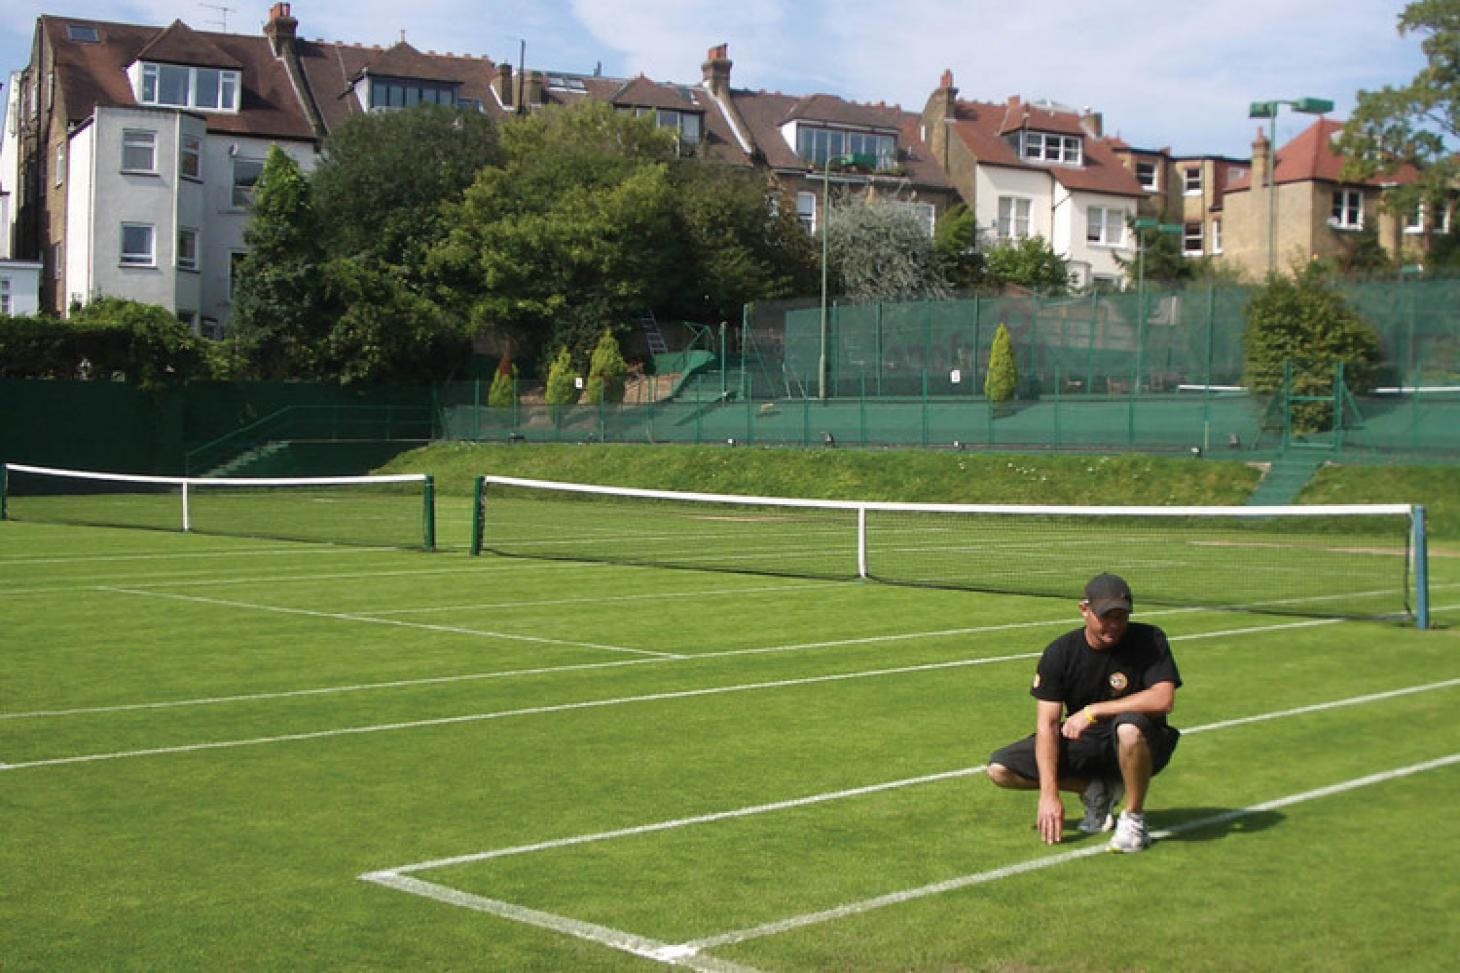 South Hampstead Lawn Tennis Club Outdoor | Hard (macadam) tennis court